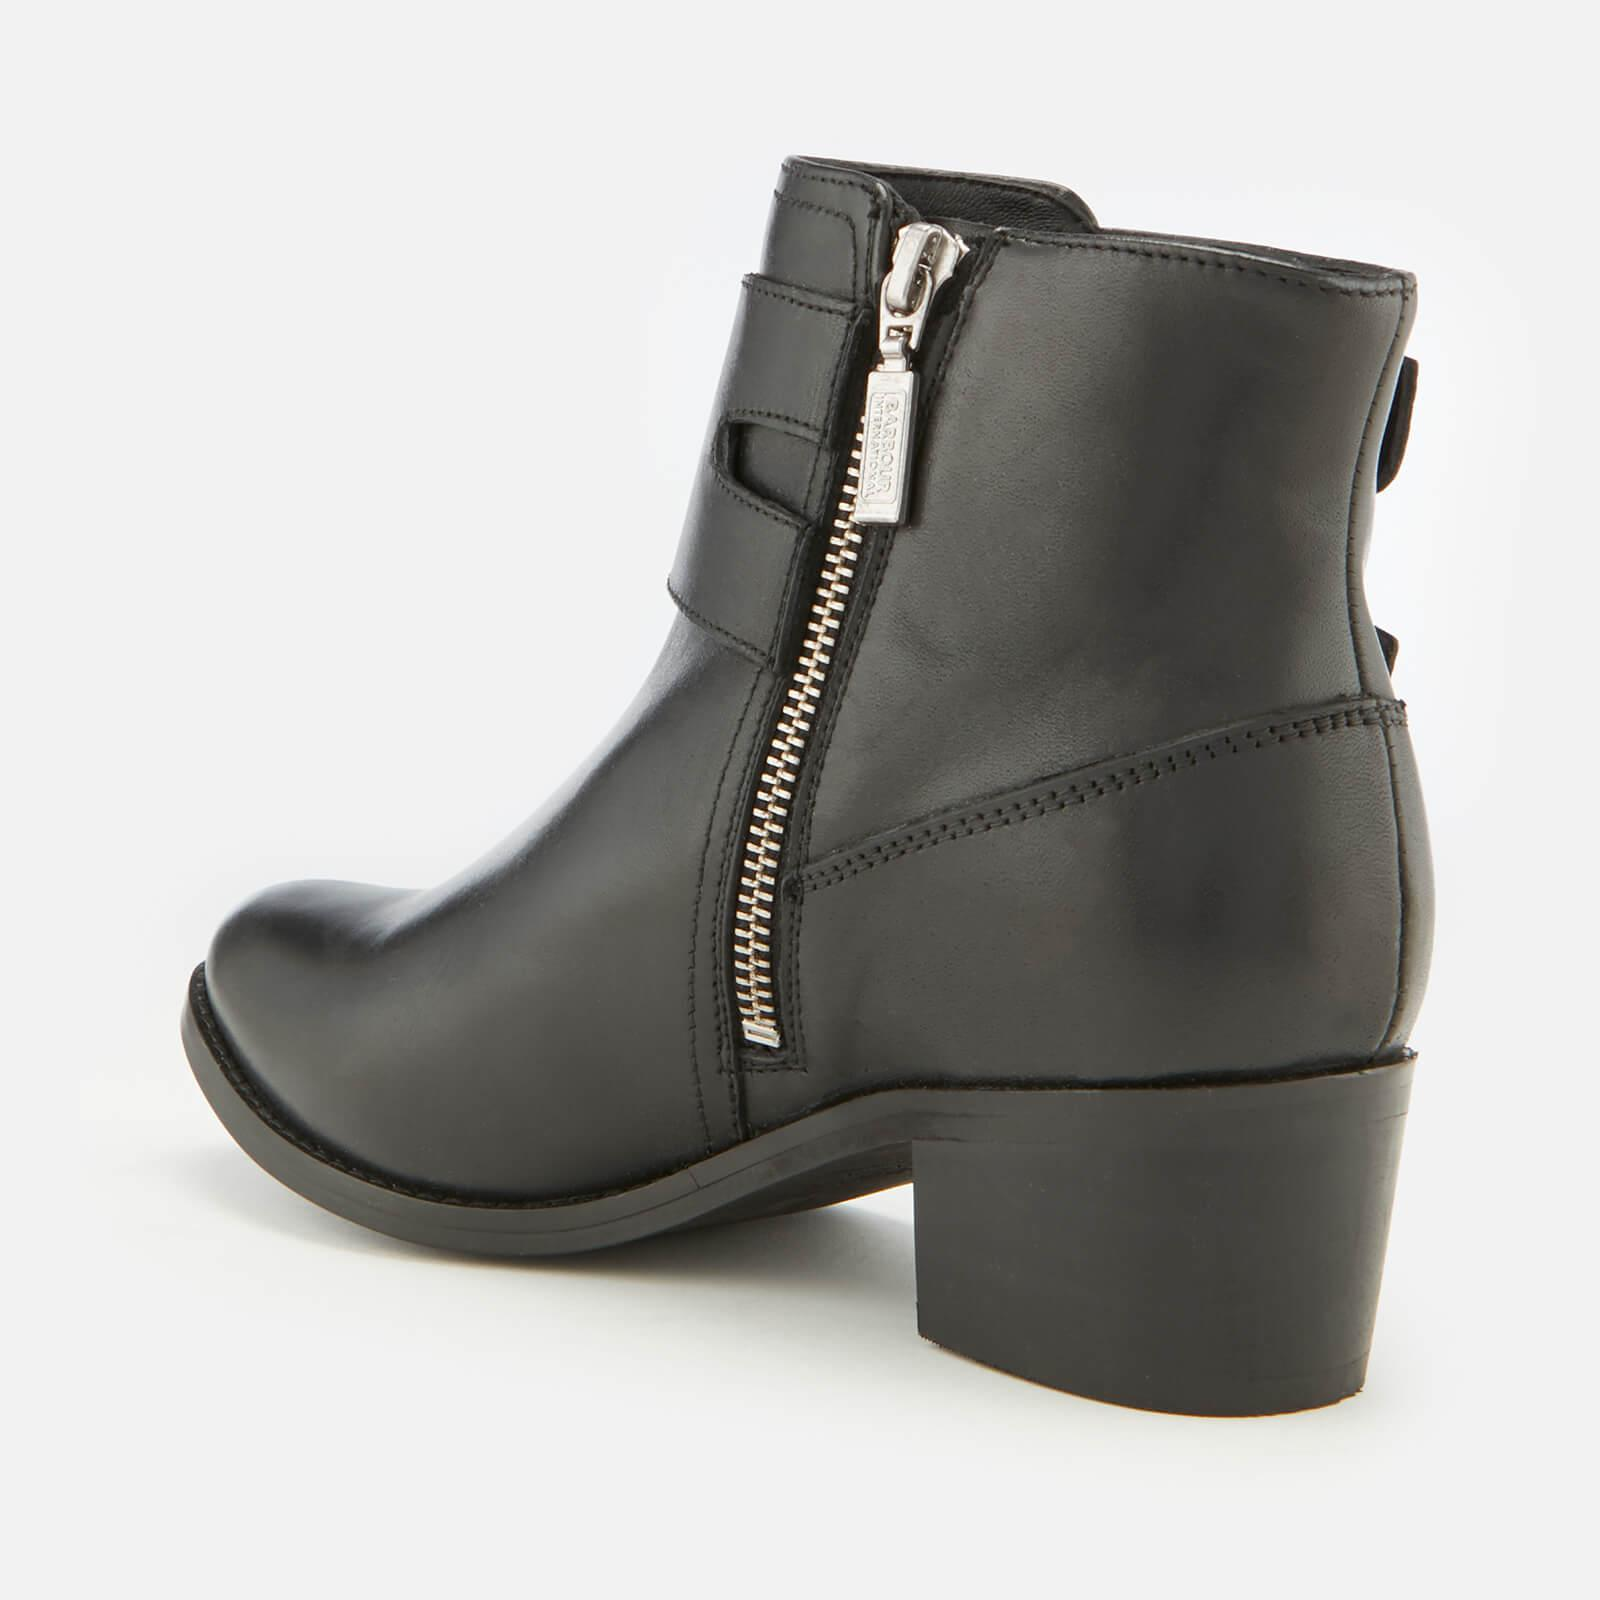 ca60d86b5f5 Lyst - Barbour Inglewood Leather Buckle Heeled Ankle Boots in Black ...